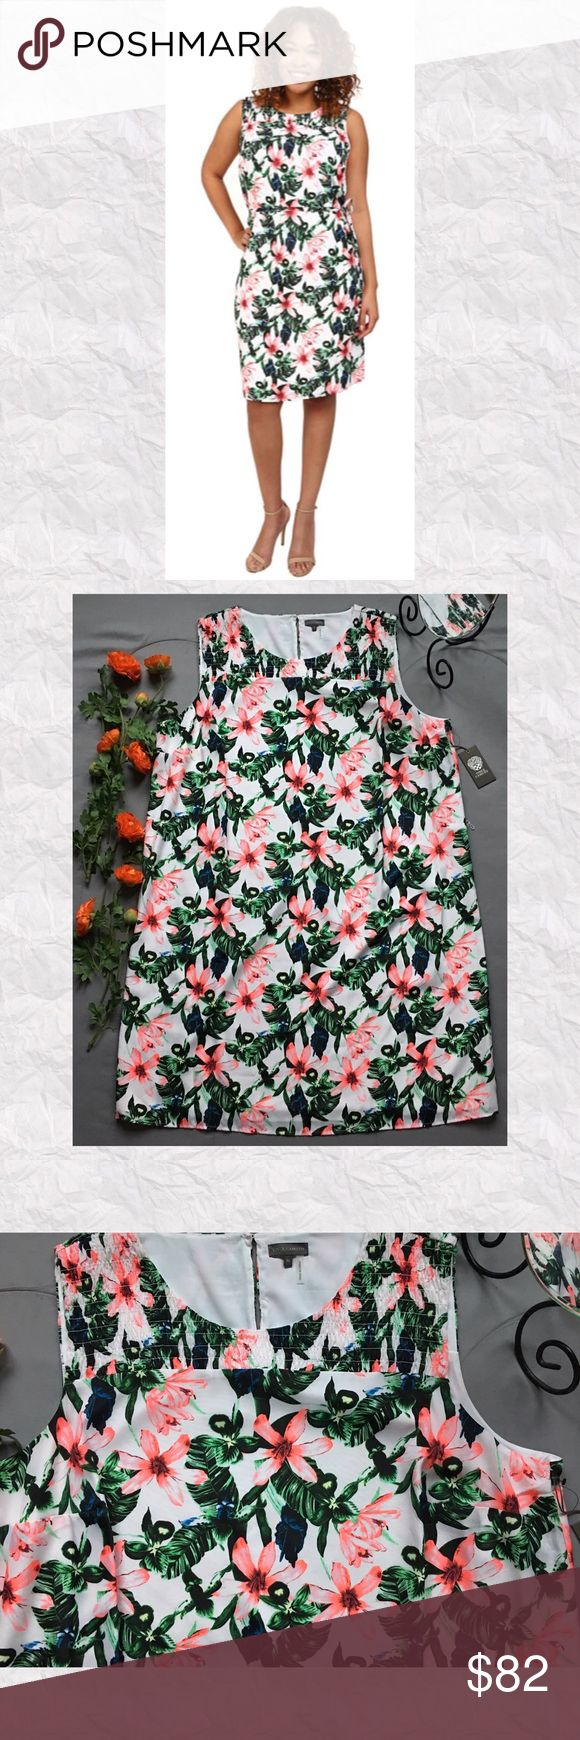 """Vince Camuto Tropical Jungle Lilly Shift Dress *SALE IS FOR DRESS ONLY!!   *Condition: NWT. NO BELT. *Neckline: Smocked Crew Neck  *Smocking across back neckline *Sleeve style: Sleeveless *Silhouette: Shift *Pockets: No *Closure: Popover; buttons at nape *Shell: 100% Polyester  *Lining: 100% Polyester  *Care: Machine wash *Measurements are approx & taken lying flat *Bust: 52"""" *Waist: 56"""" *Hip: 58"""" *Shoulder to hem: 42"""" *Stored in non-smoking pet free home Vince Camuto Dresses"""